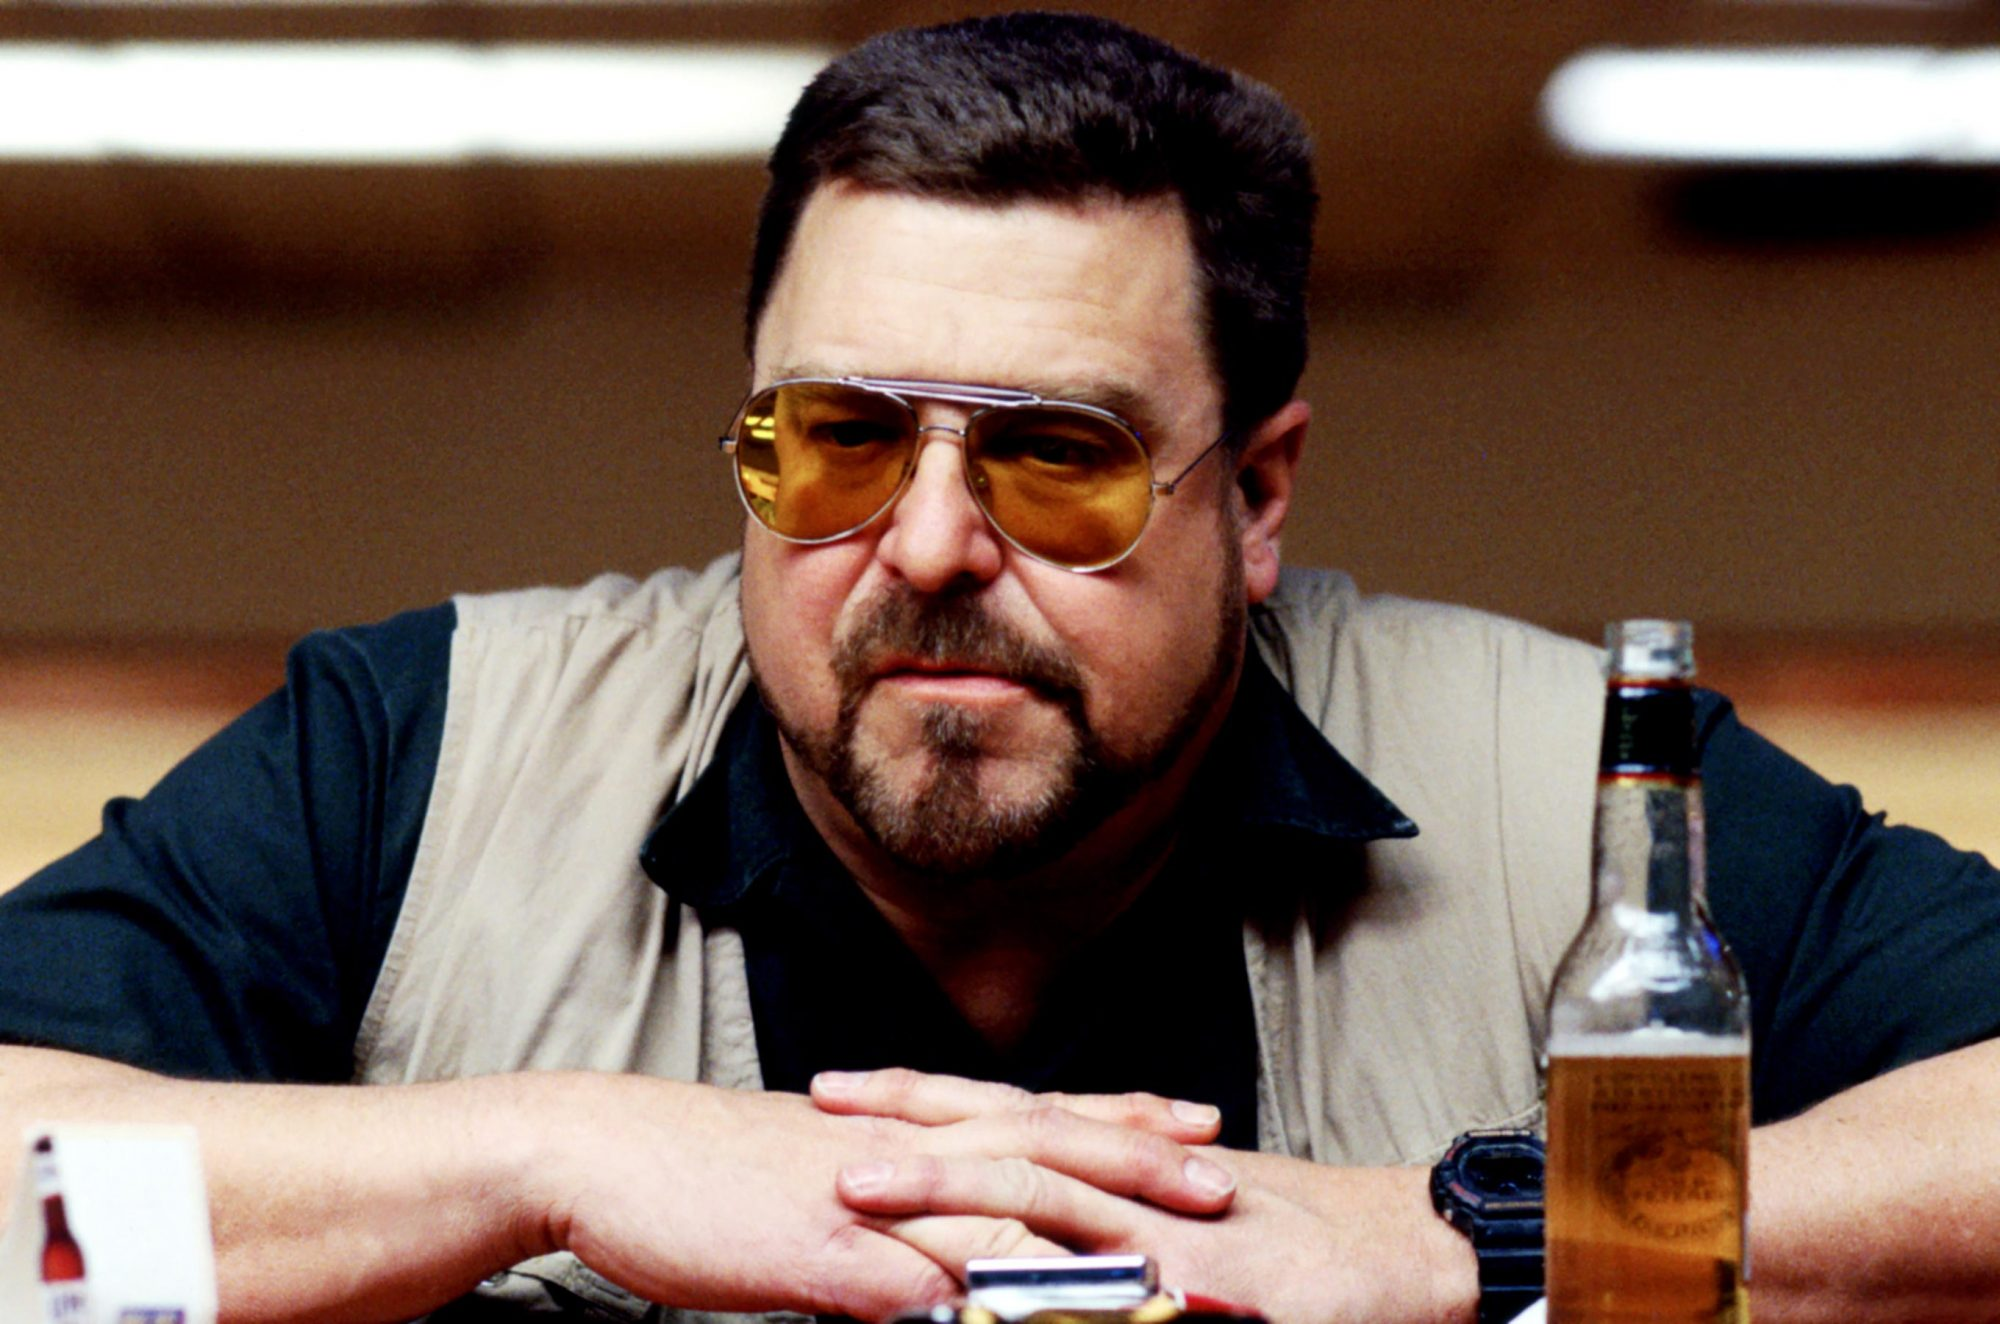 THE BIG LEBOWSKI, John Goodman, 1998, (c) Gramercy Pictures/courtesy Everett Collection